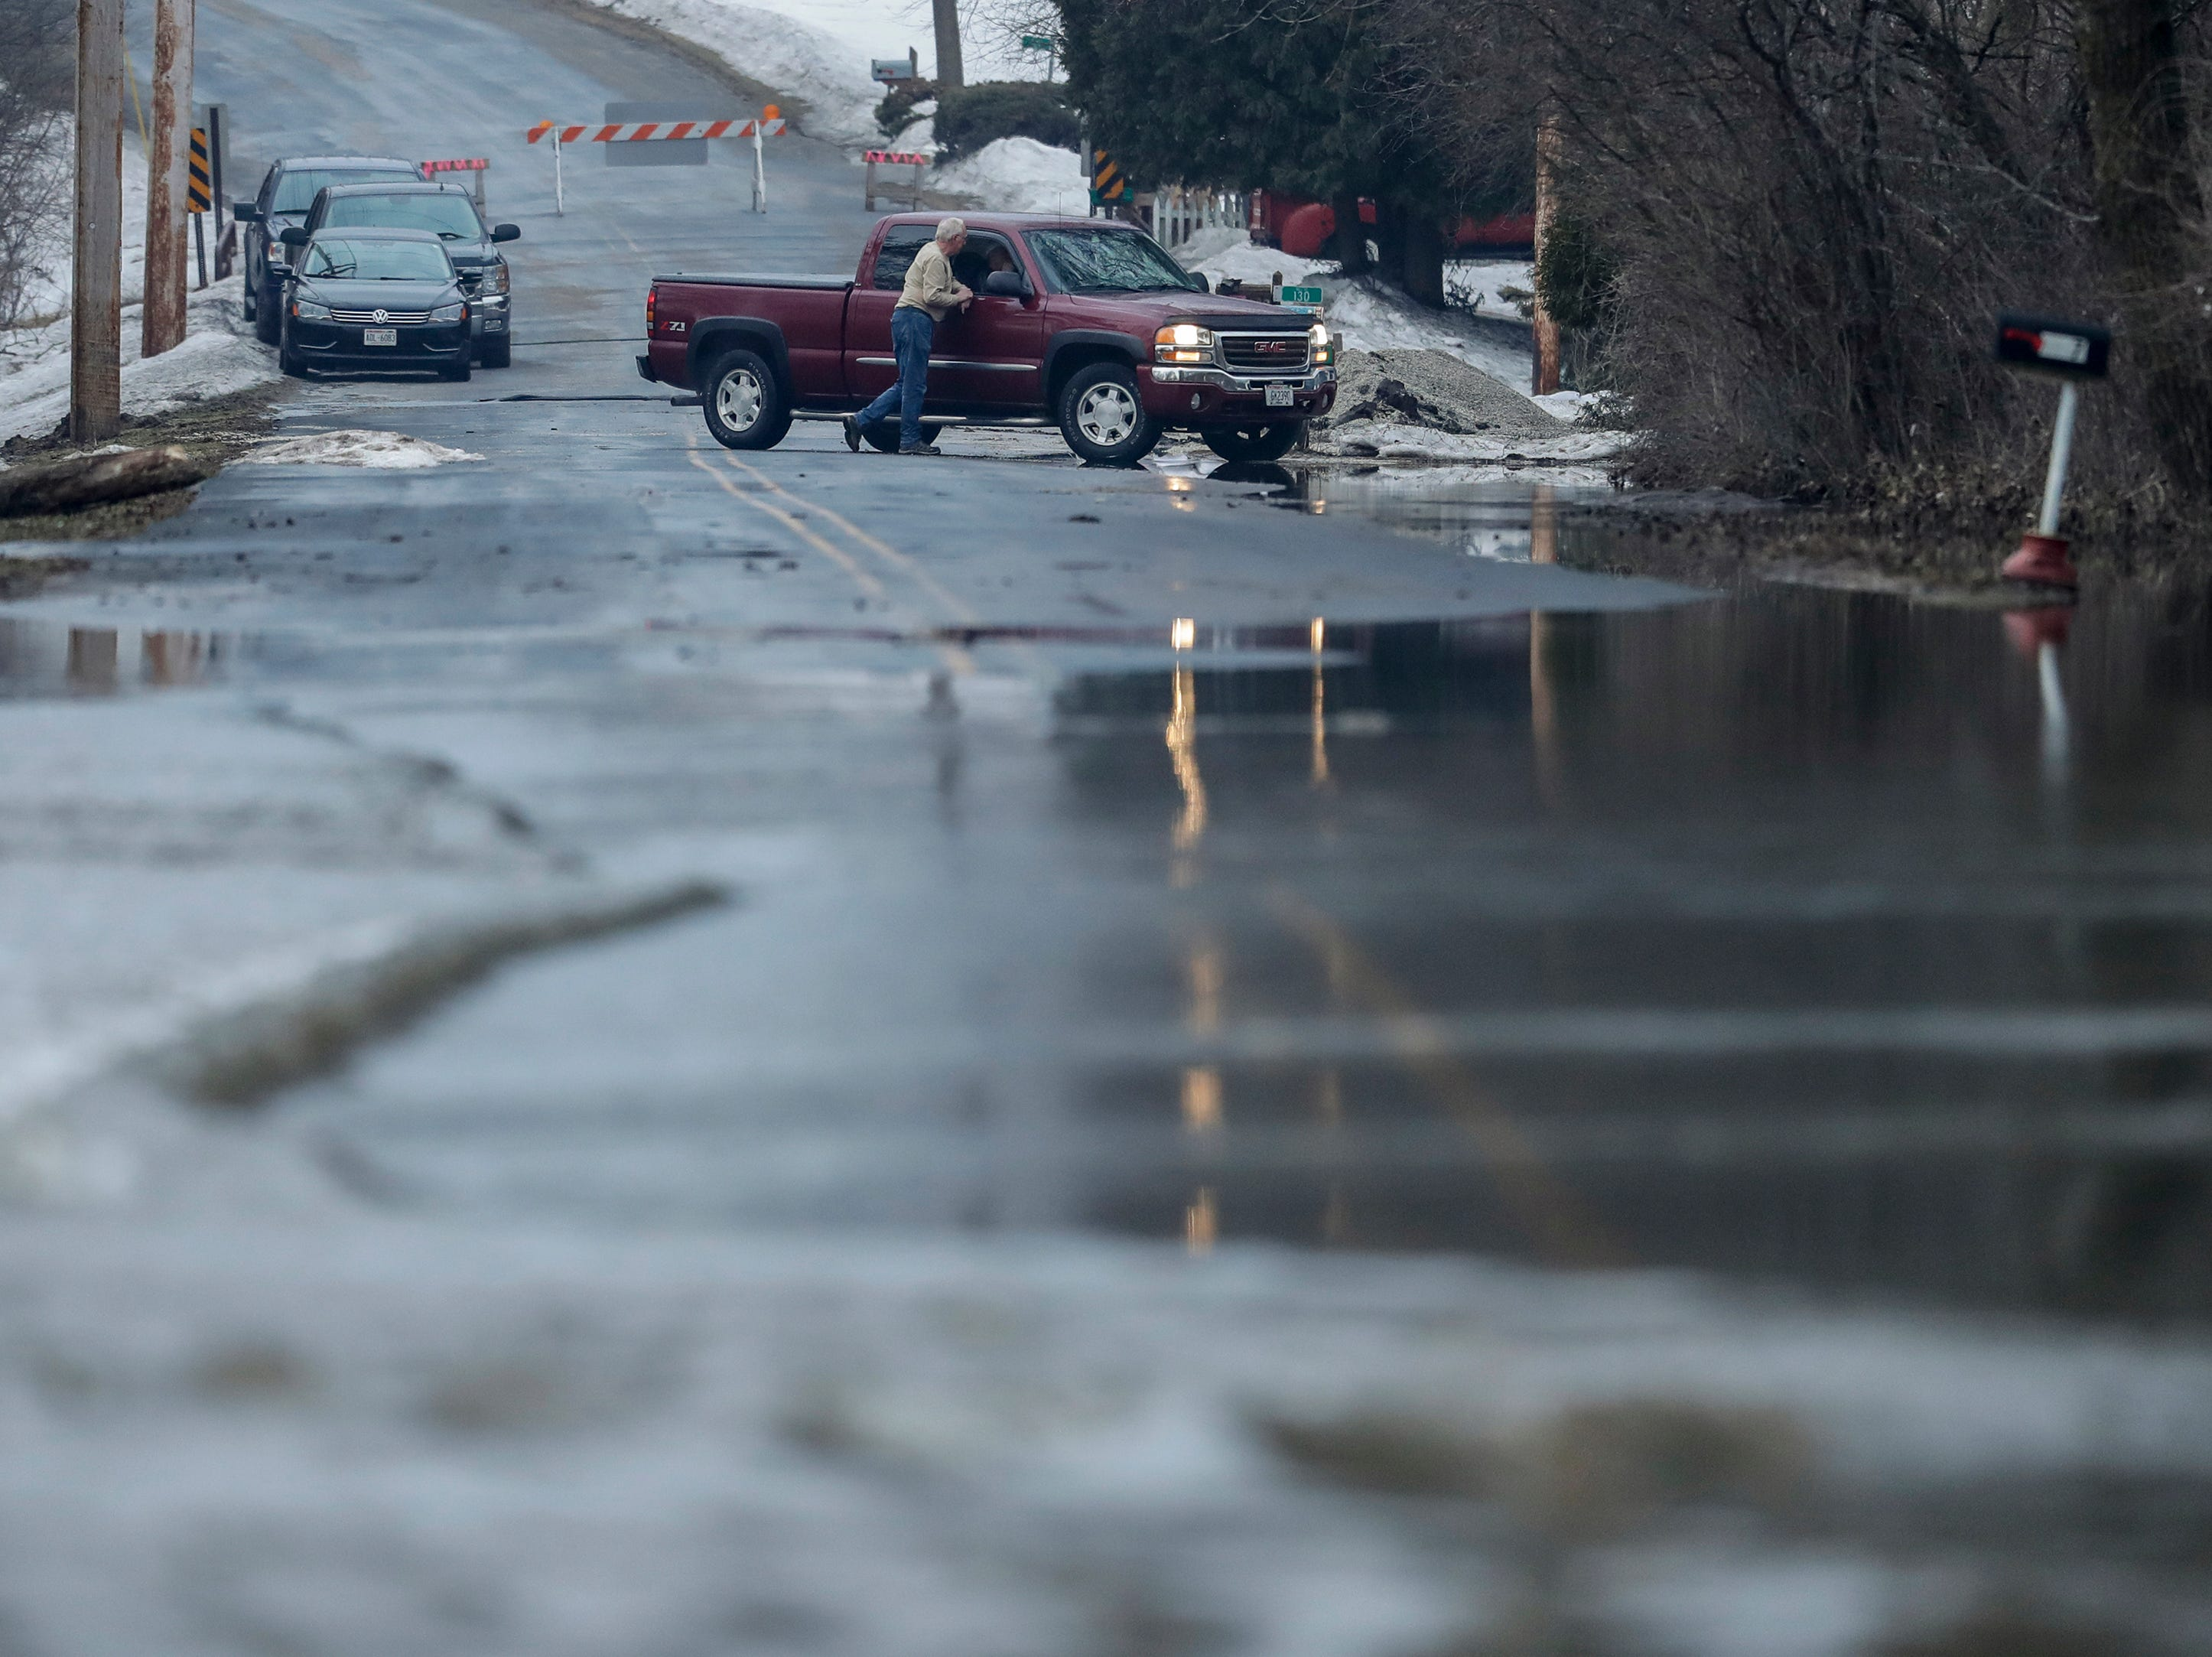 Water rises on Mill Road after an ice jam forms on the Manitowoc River Wednesday, March 20, 2019, in Manitowoc, Wis. Joshua Clark/USA TODAY NETWORK-Wisconsin